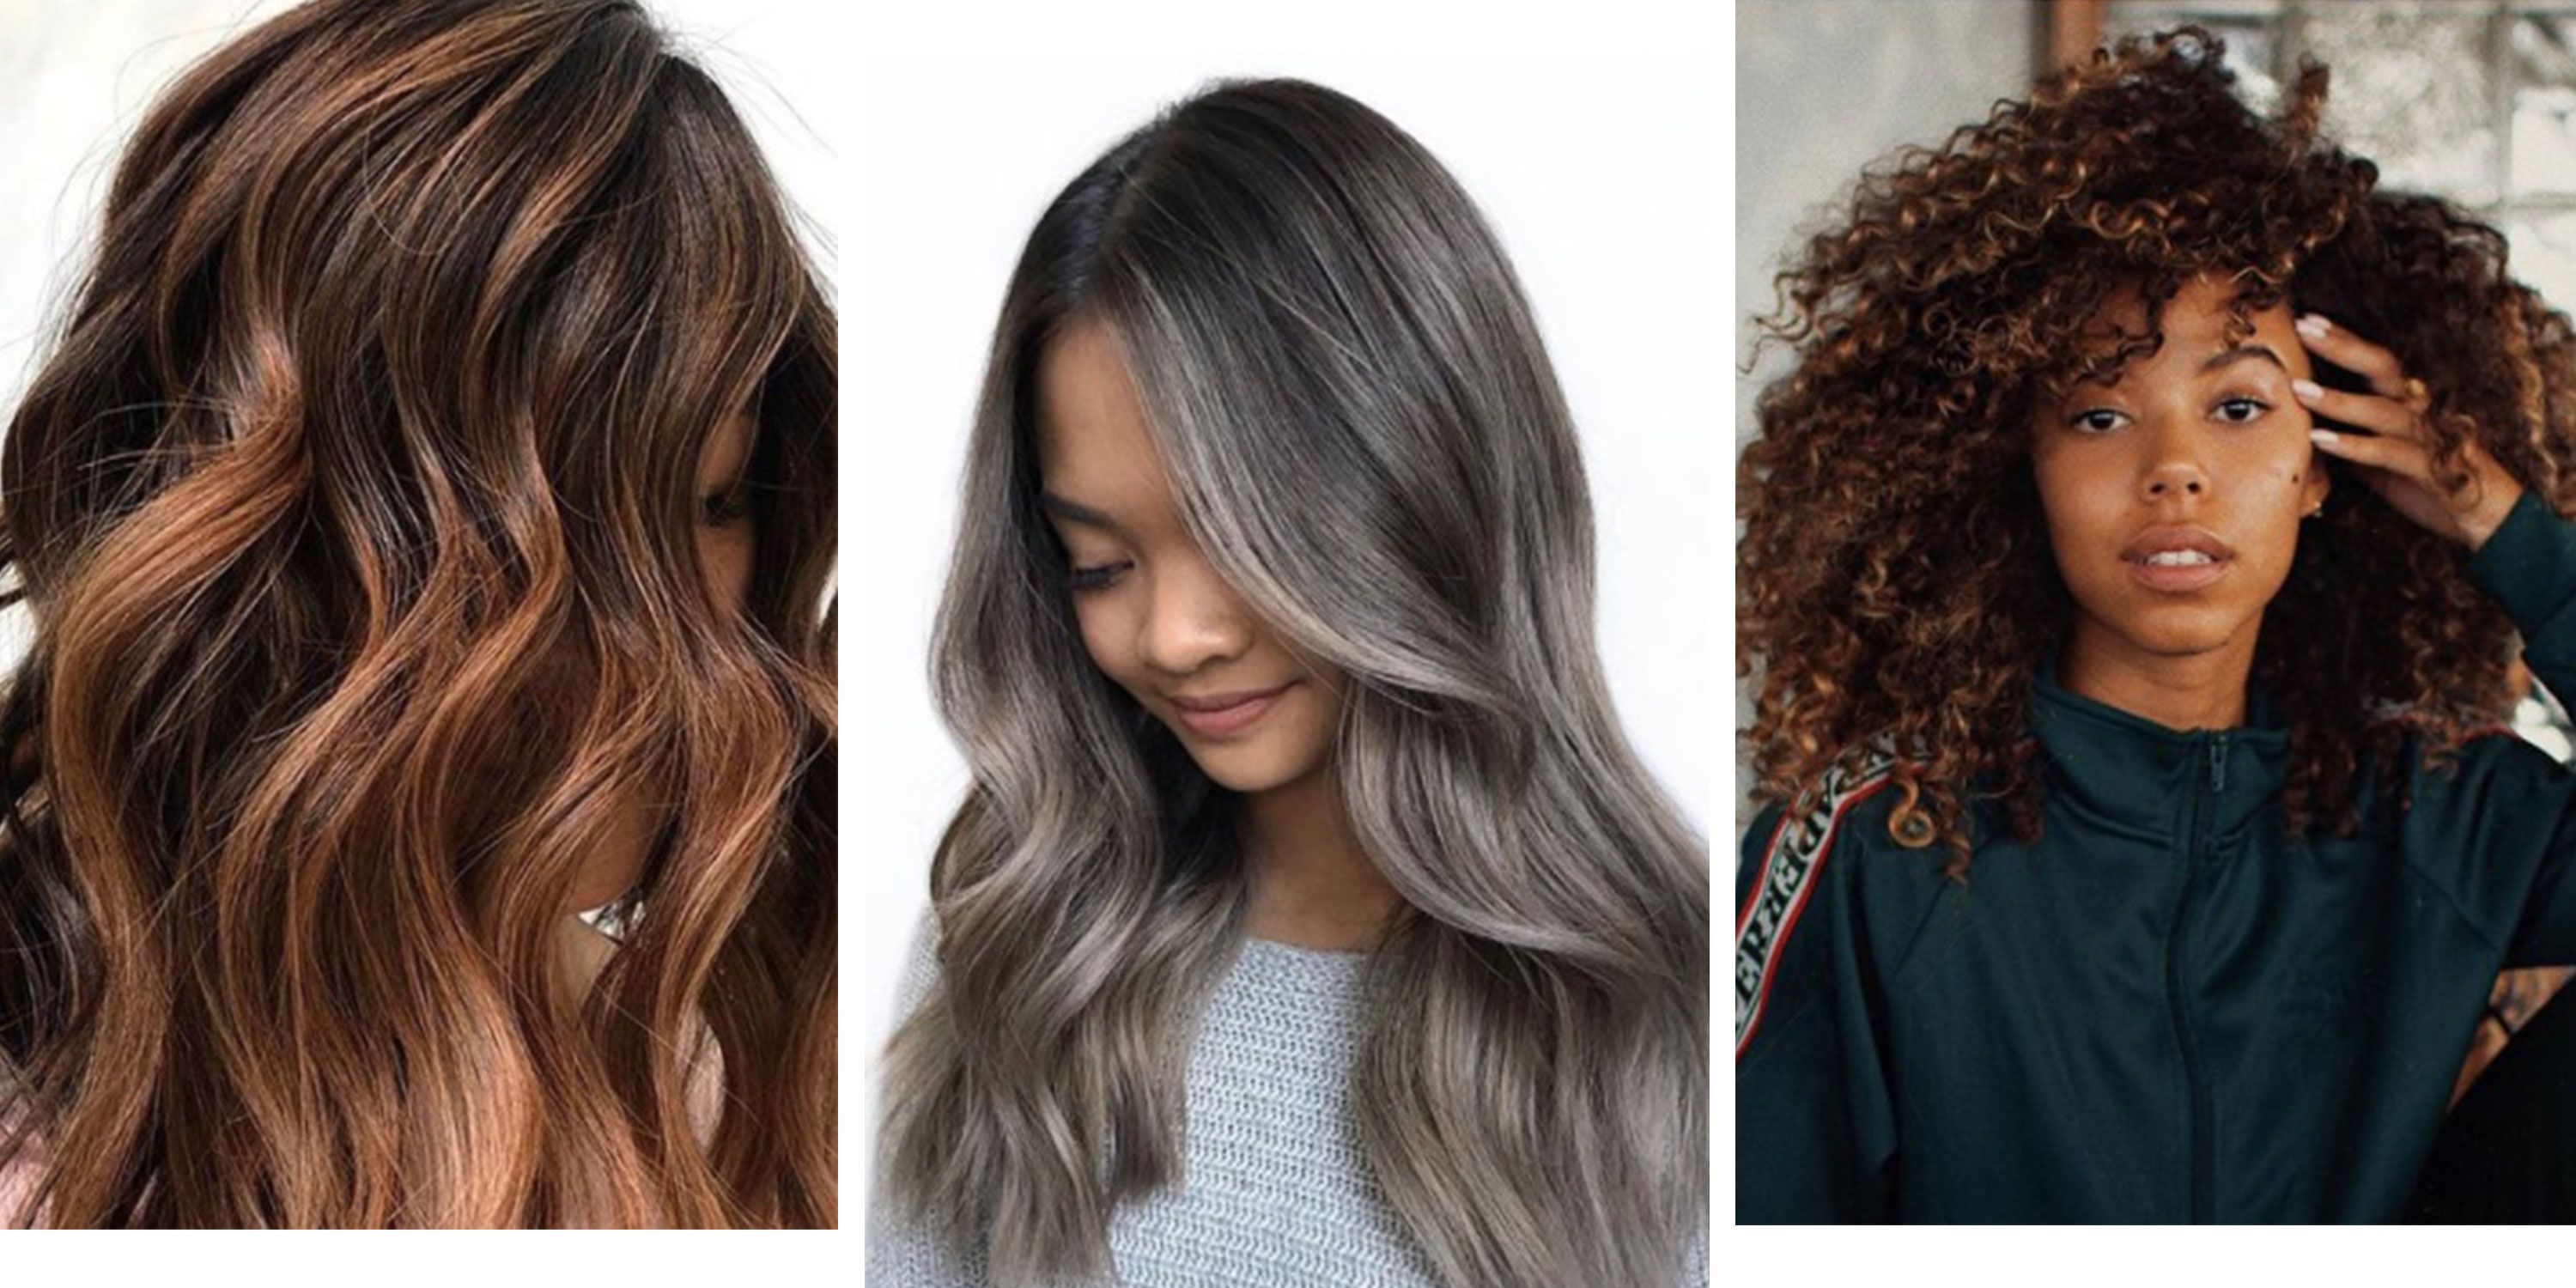 Flipboard 8 Winter Hair Colour Trends That Are Too Pretty For Words